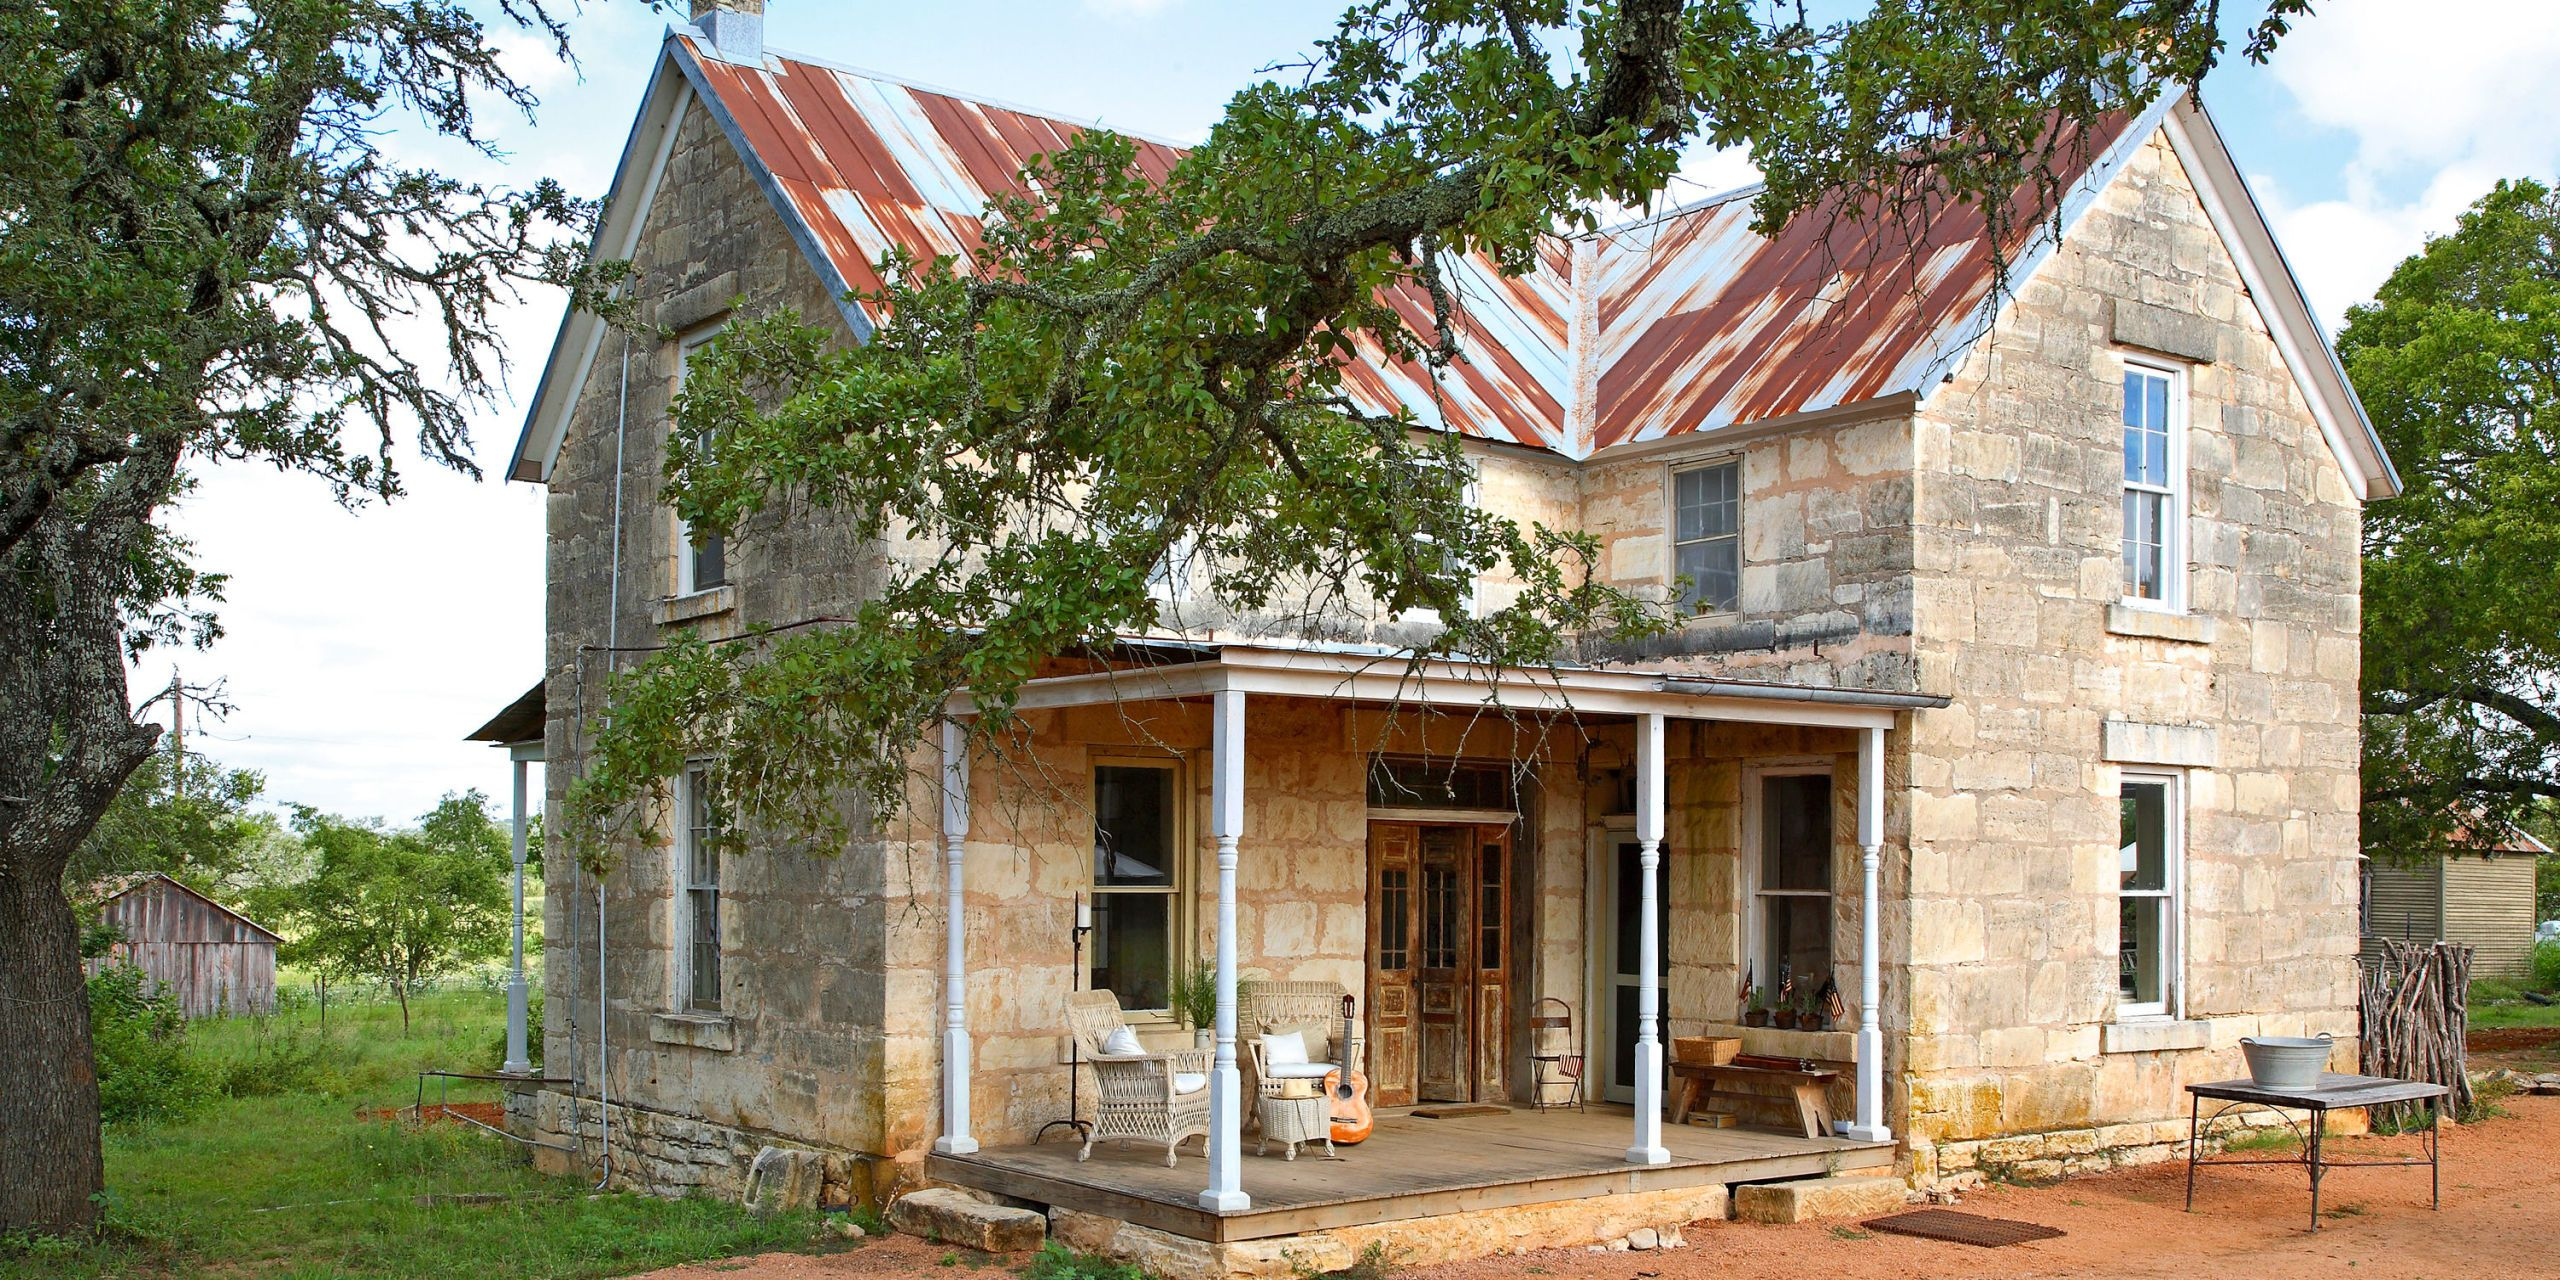 When A Couple Took On The Renovation Of A Unique Home In The Texas Hill  Country They Found Some Unexpected Delights.